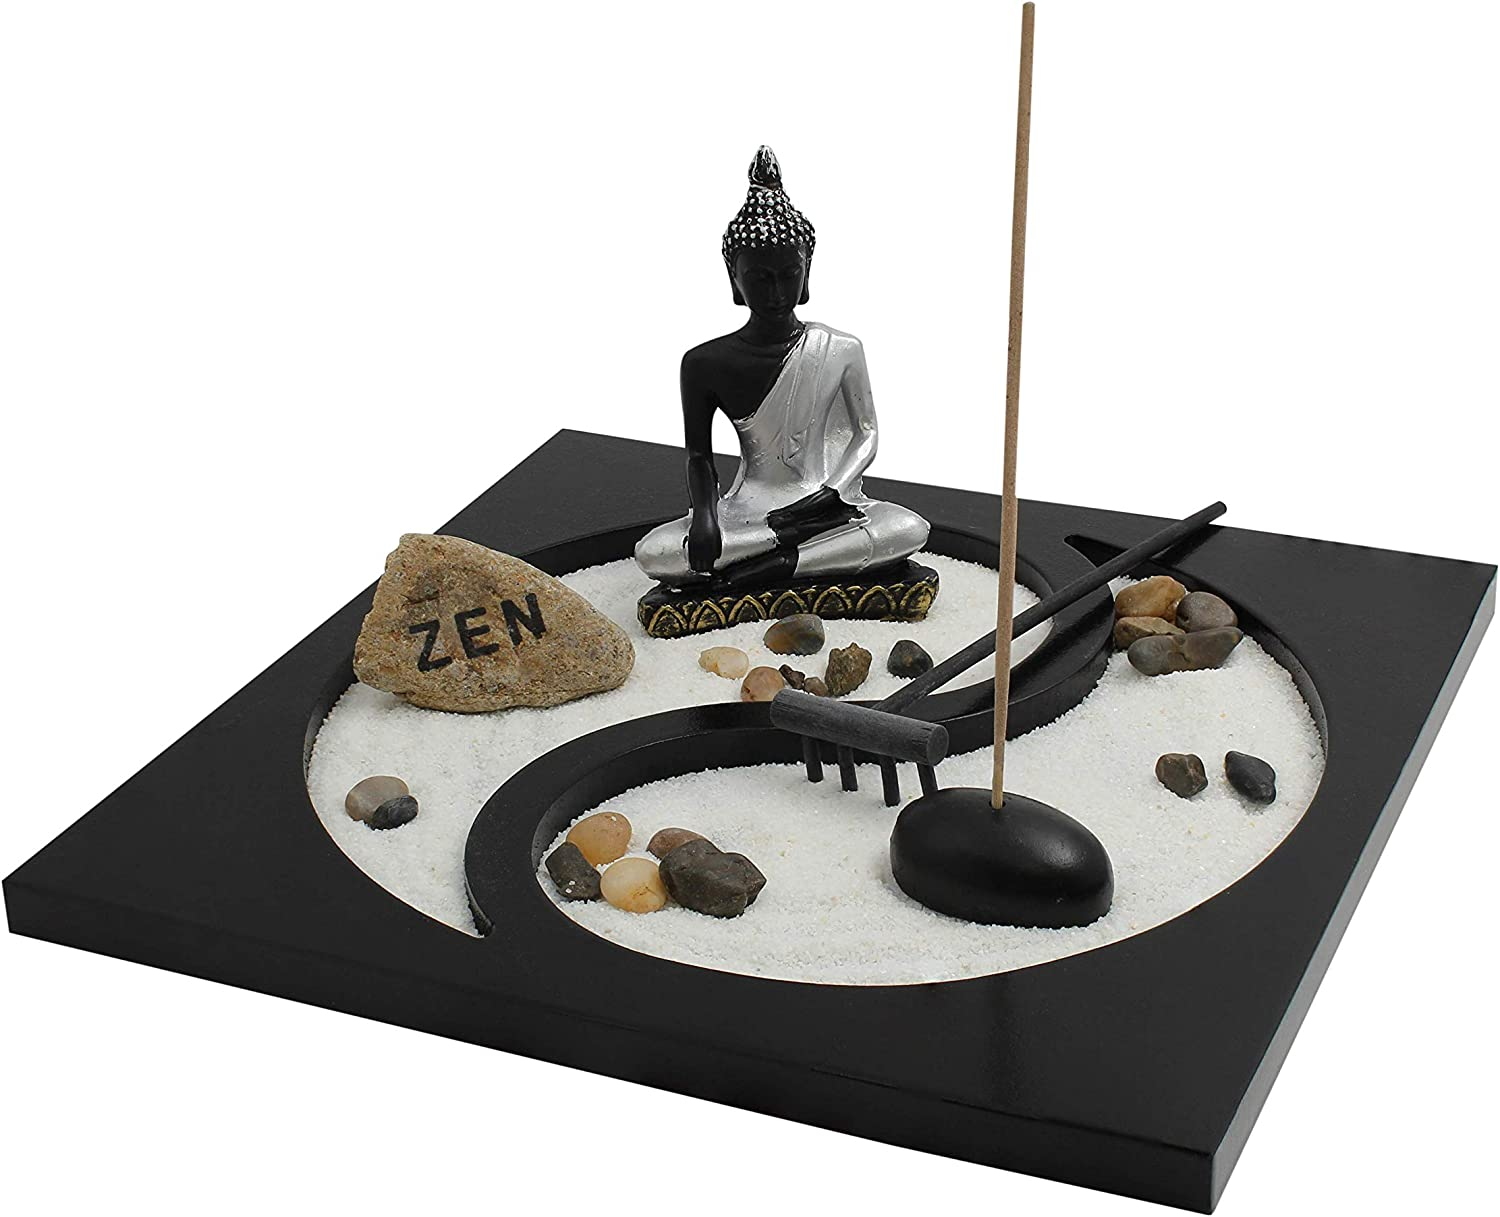 "Royal Brands Yin and Yang Zen Garden with Buddha, Rake, Sand and Rock Garden, and Incense Holder – Peace and Tranquility (9""x9""x6"")"